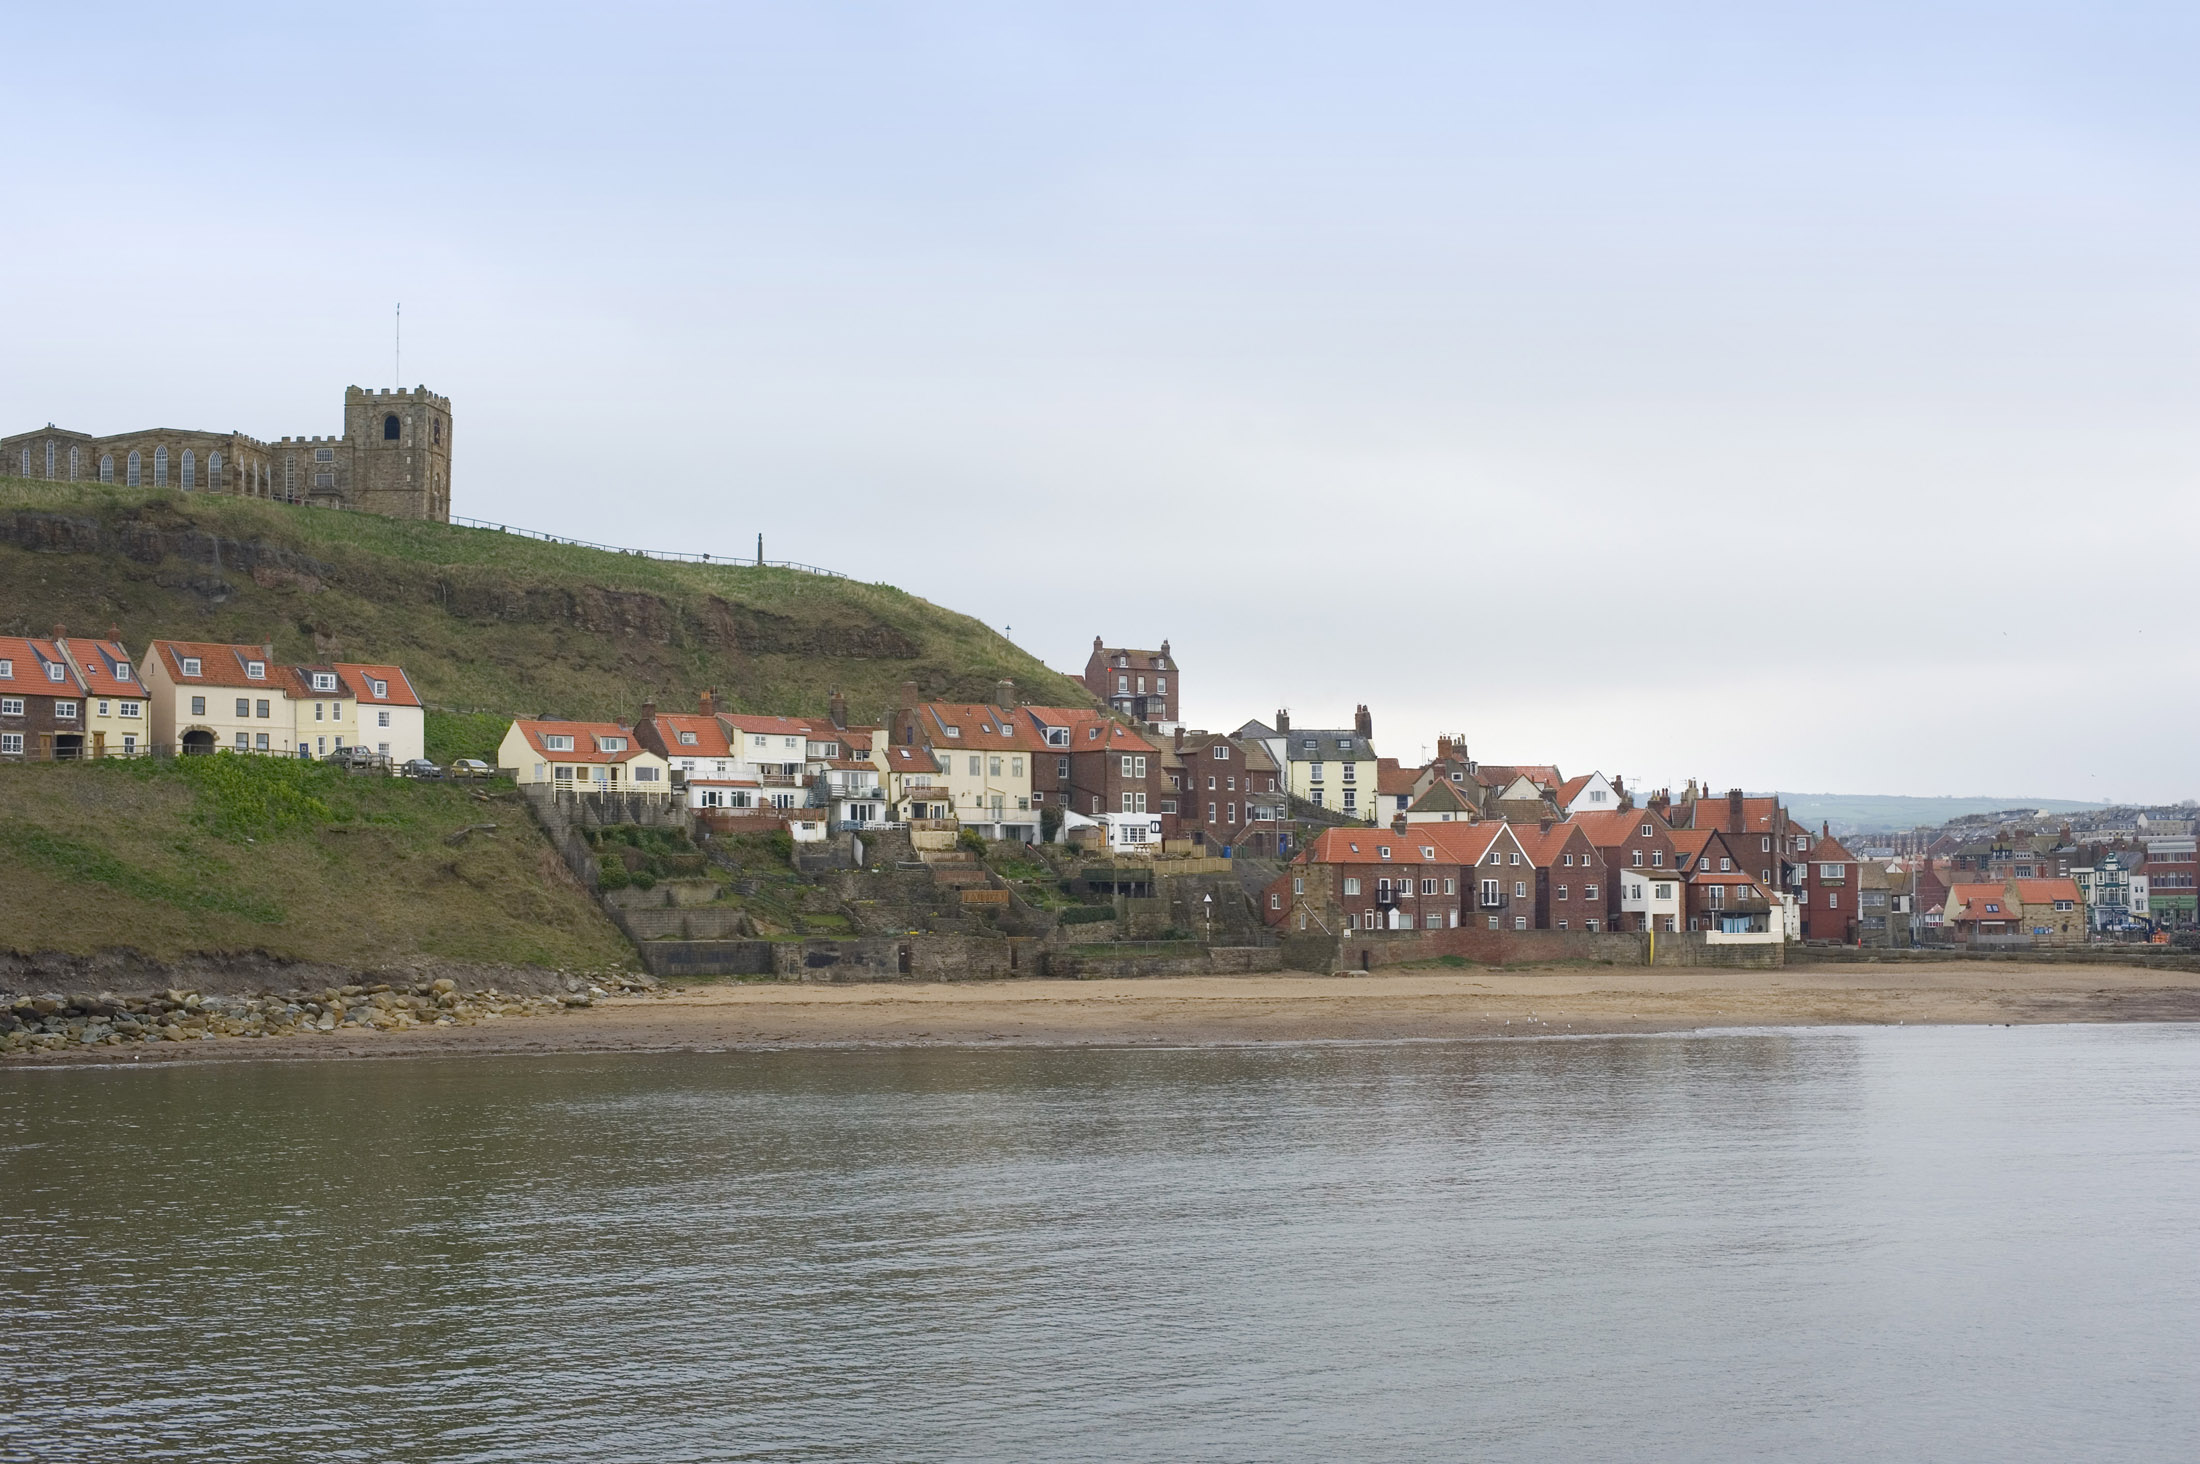 st marys church on top of the east cliff and below the houses on tate hill and tate sands, whitby lower harbour